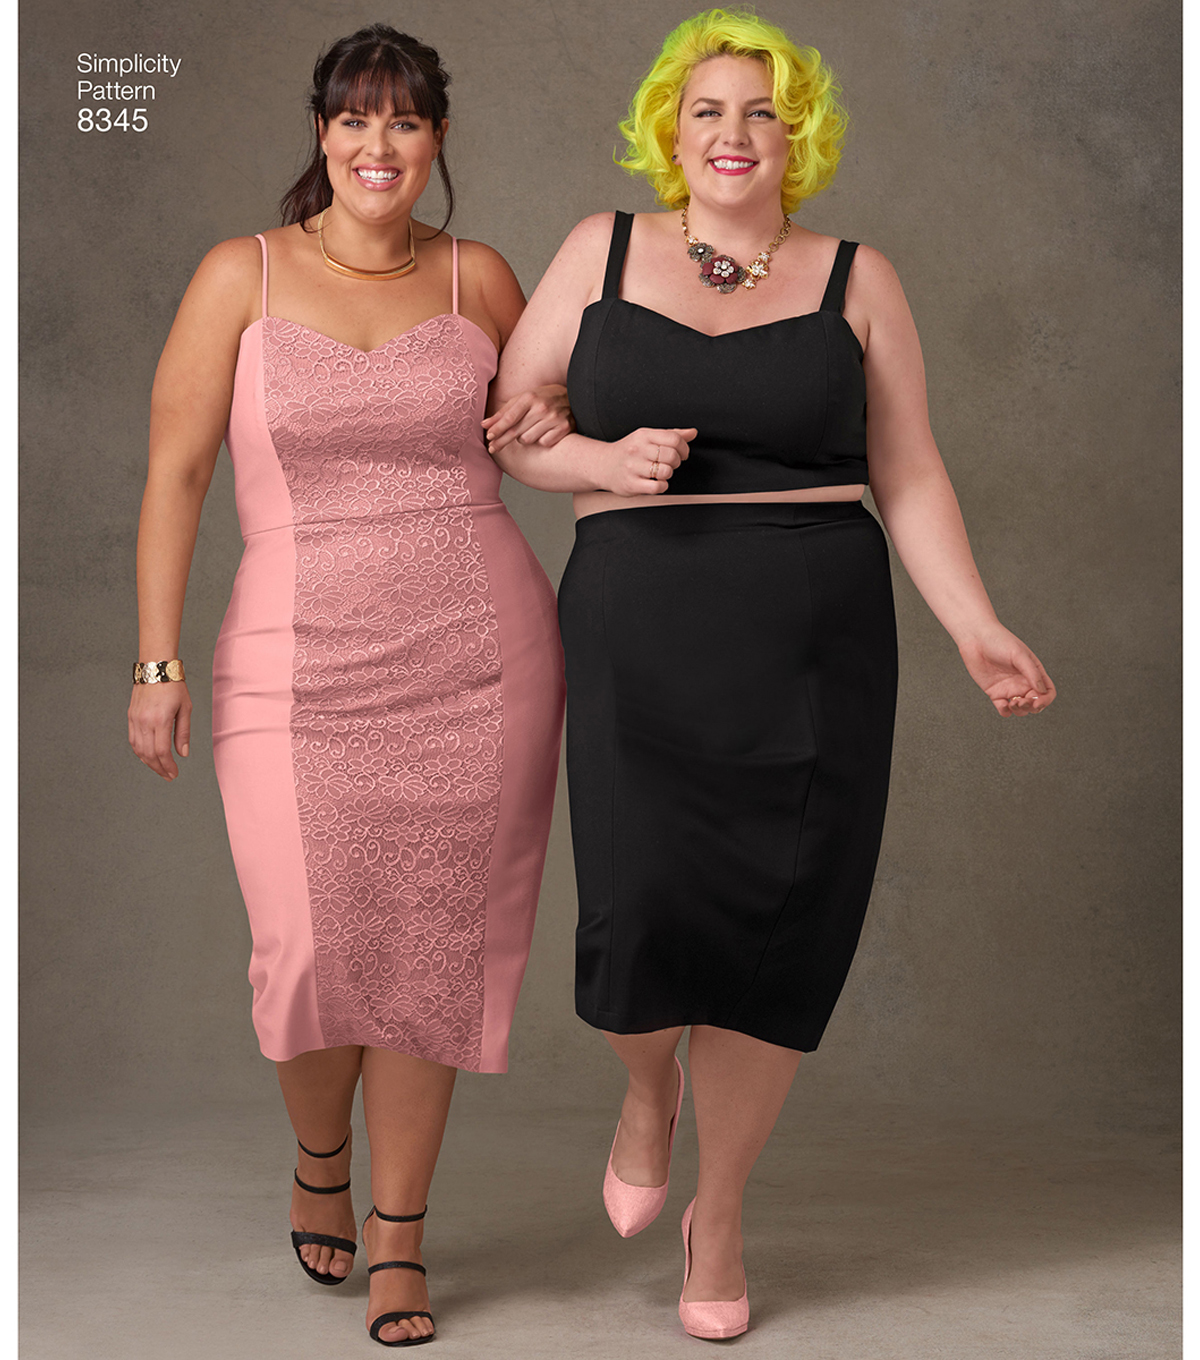 Simplicity Pattern 8345 Plus Size Dress, Top & Skirt-Size G5 (26W-34W)